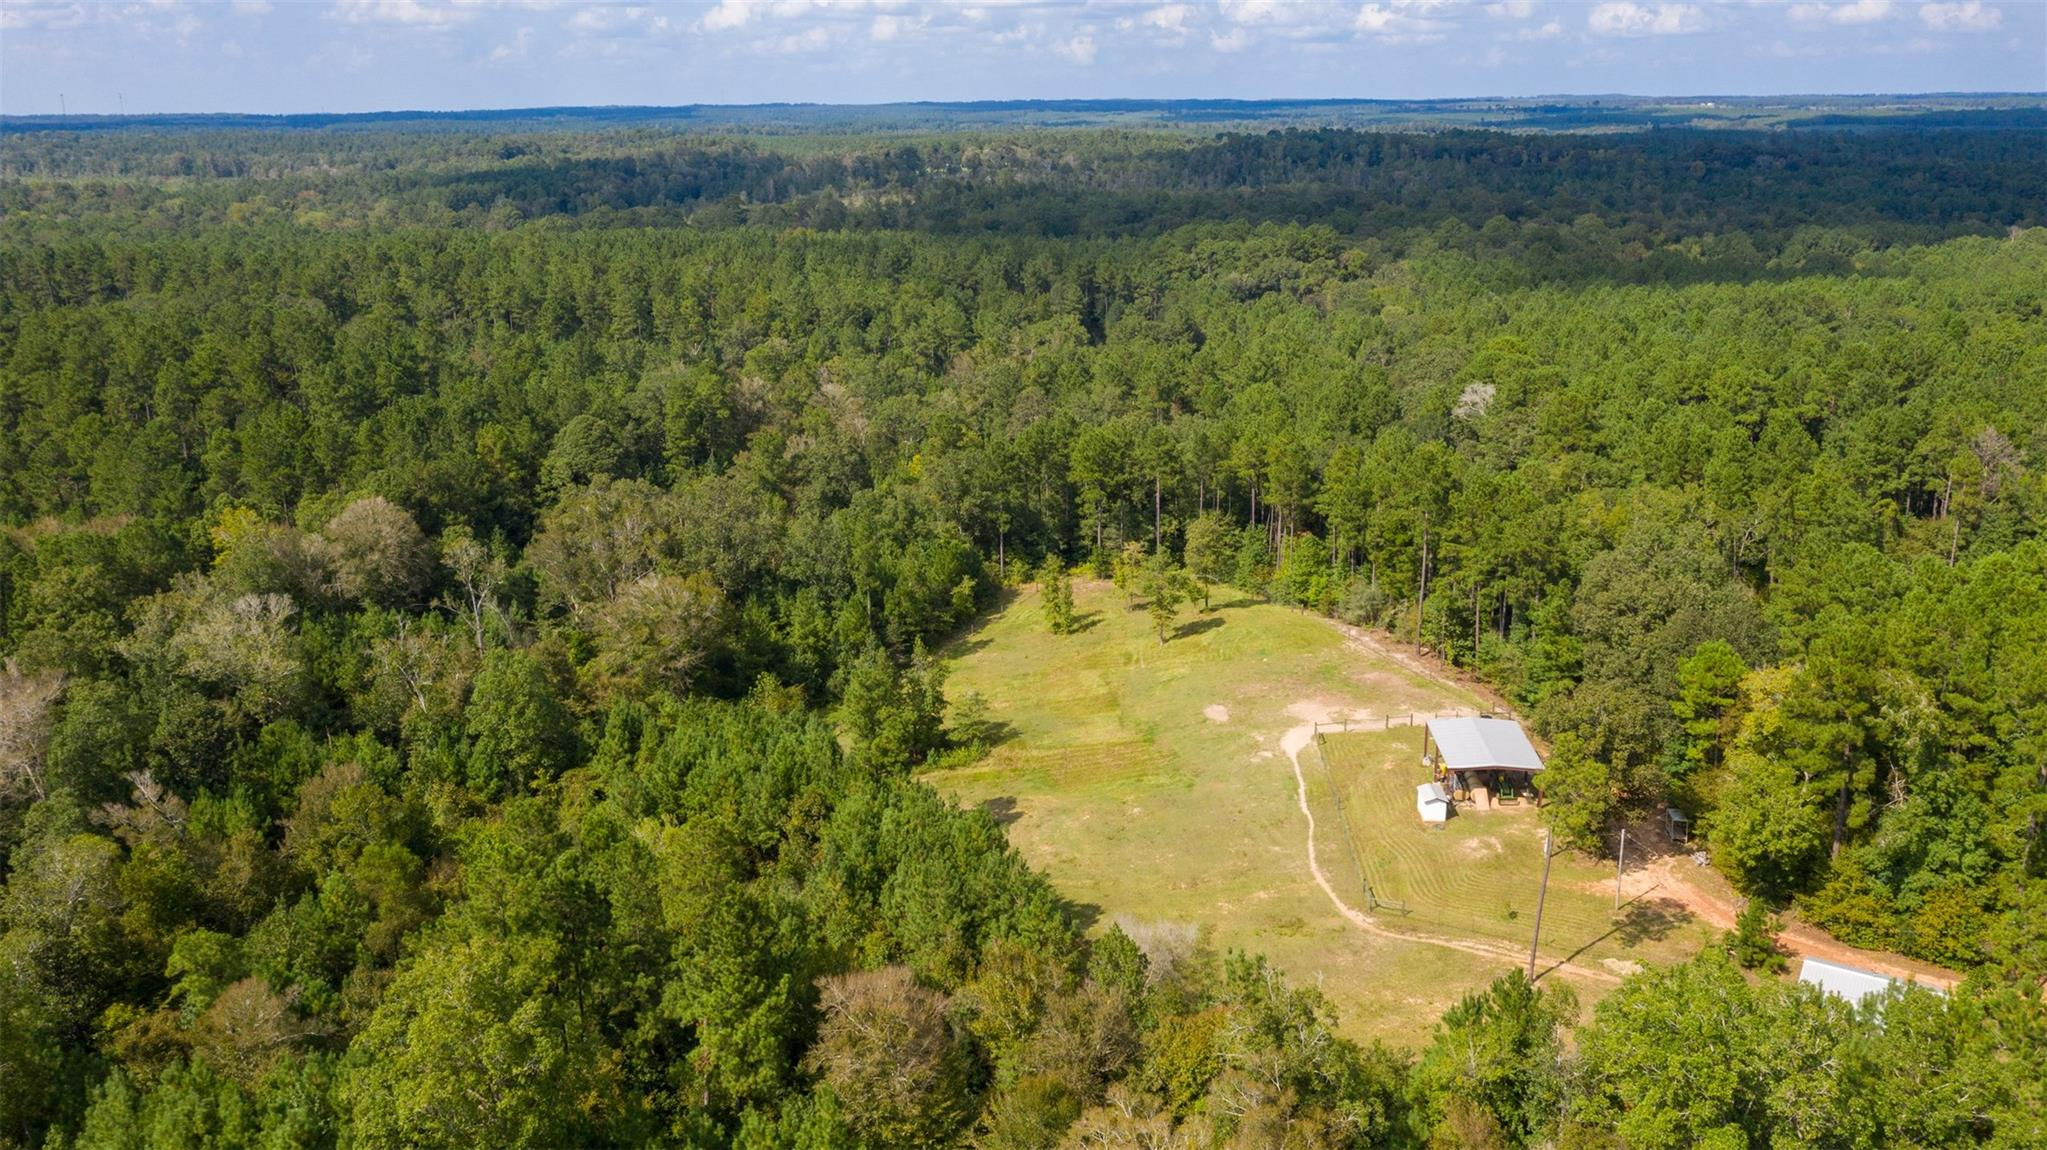 tbd Farm to Market Road 3065 Property Photo - Colmesneil, TX real estate listing